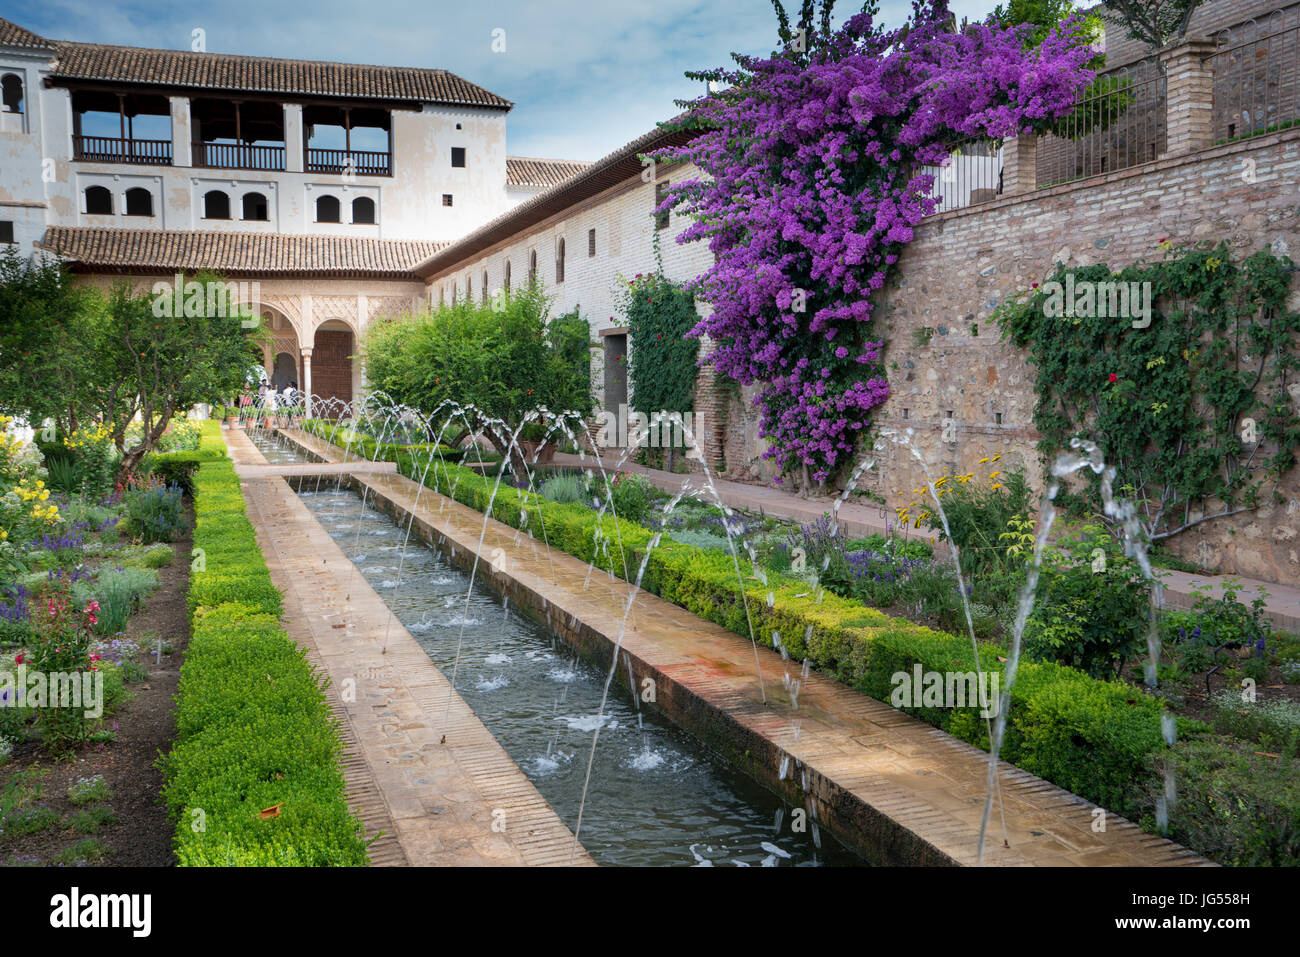 Fountains and bougainvillea growing in the gradens of the Alhambra Palace and fortress located in, Granada, Andalusia, Stock Photo